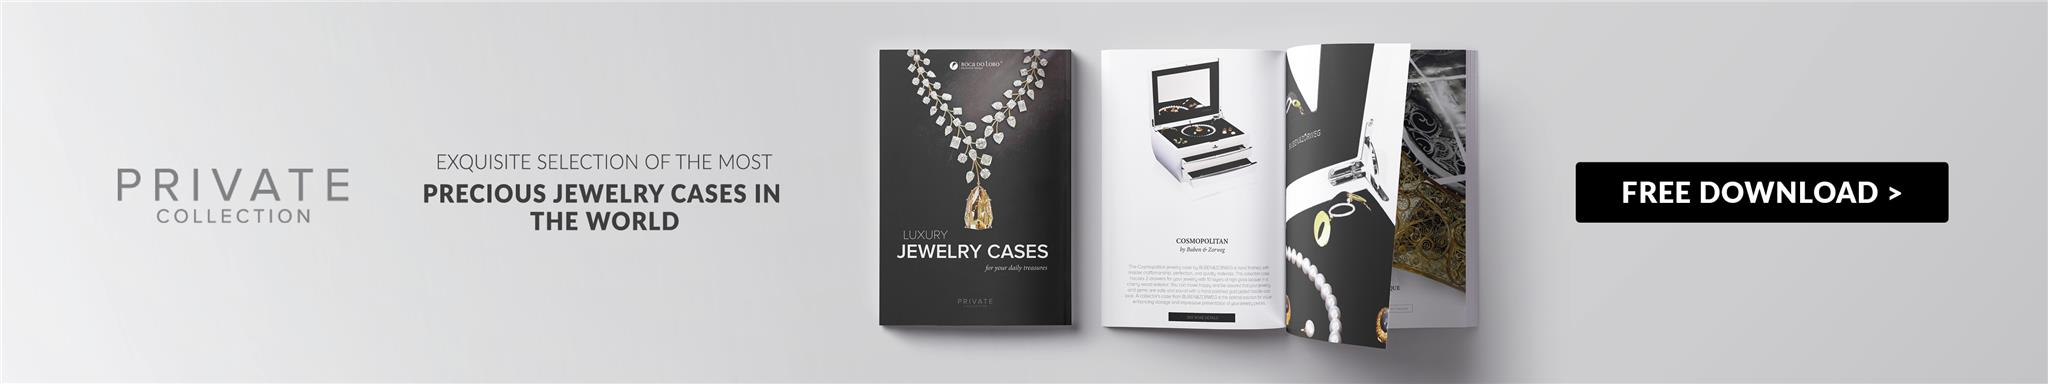 Jewelry Cases Ebook Boca do Lobo interior design projects Top 10 Interior Design Projects That Enhance Summer Vibes precious jewelry cases in the world banner